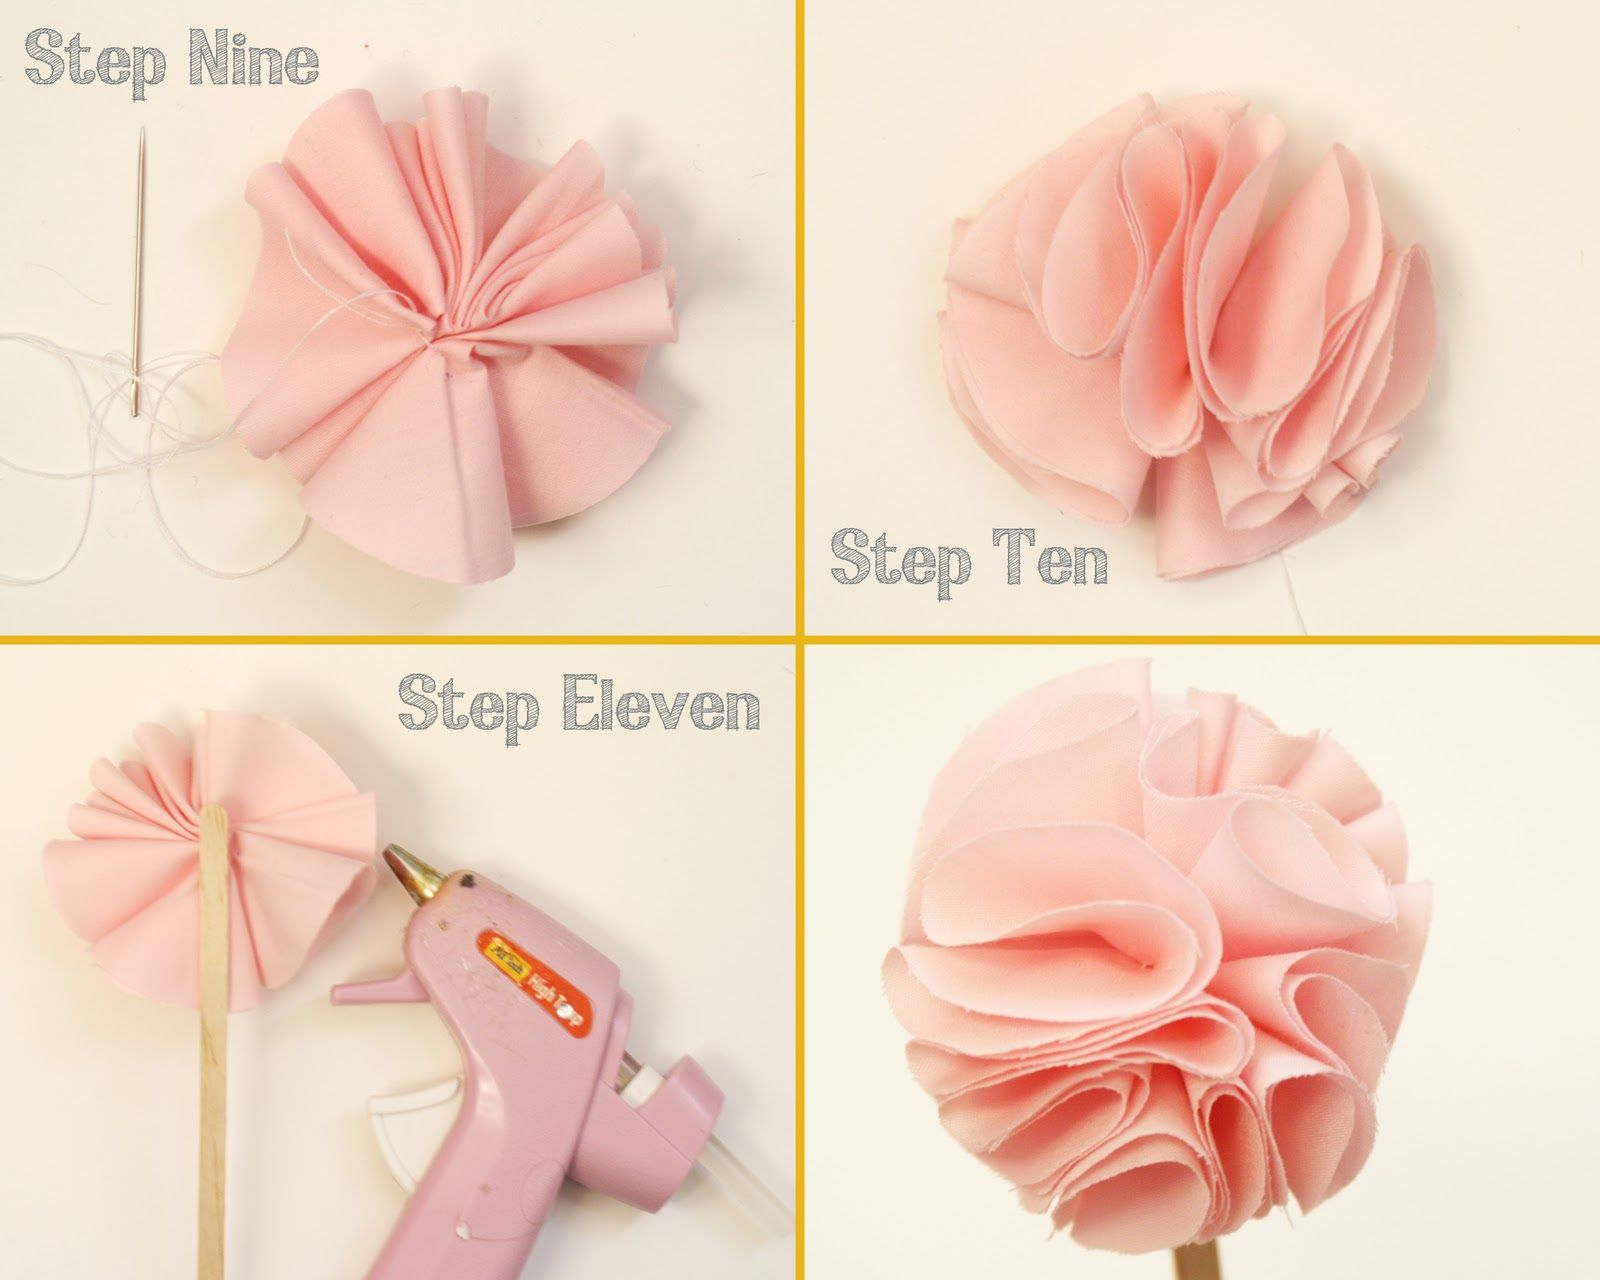 Paiges of style diy fabric flower cupcake topper deco pinterest paiges of style diy fabric flower cupcake topper izmirmasajfo